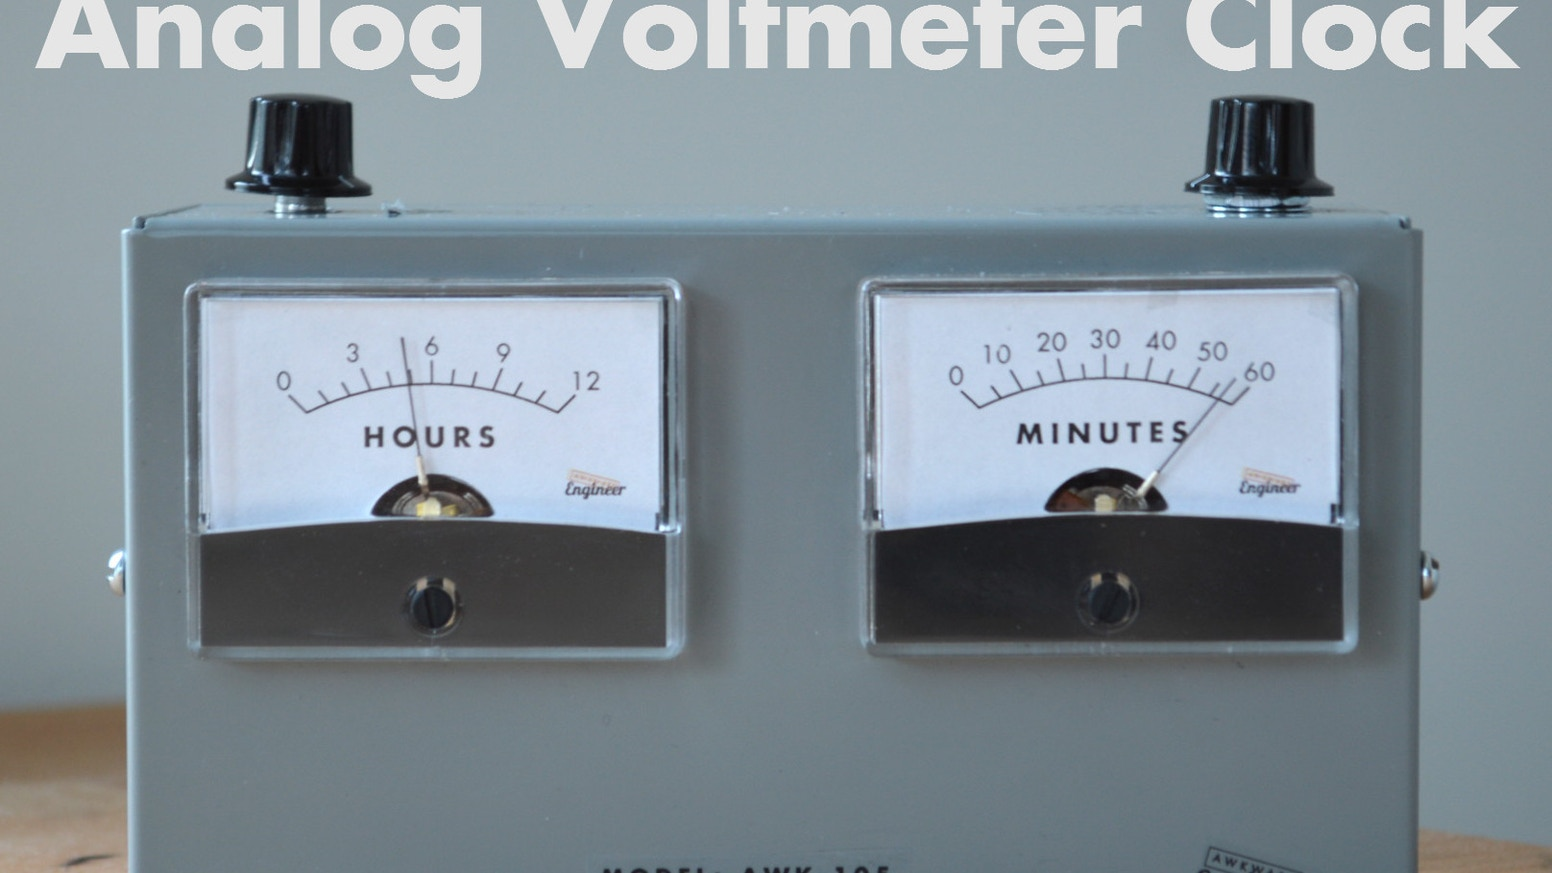 Voltmeter At A Point : Awk analog voltmeter clock by awkward engineer